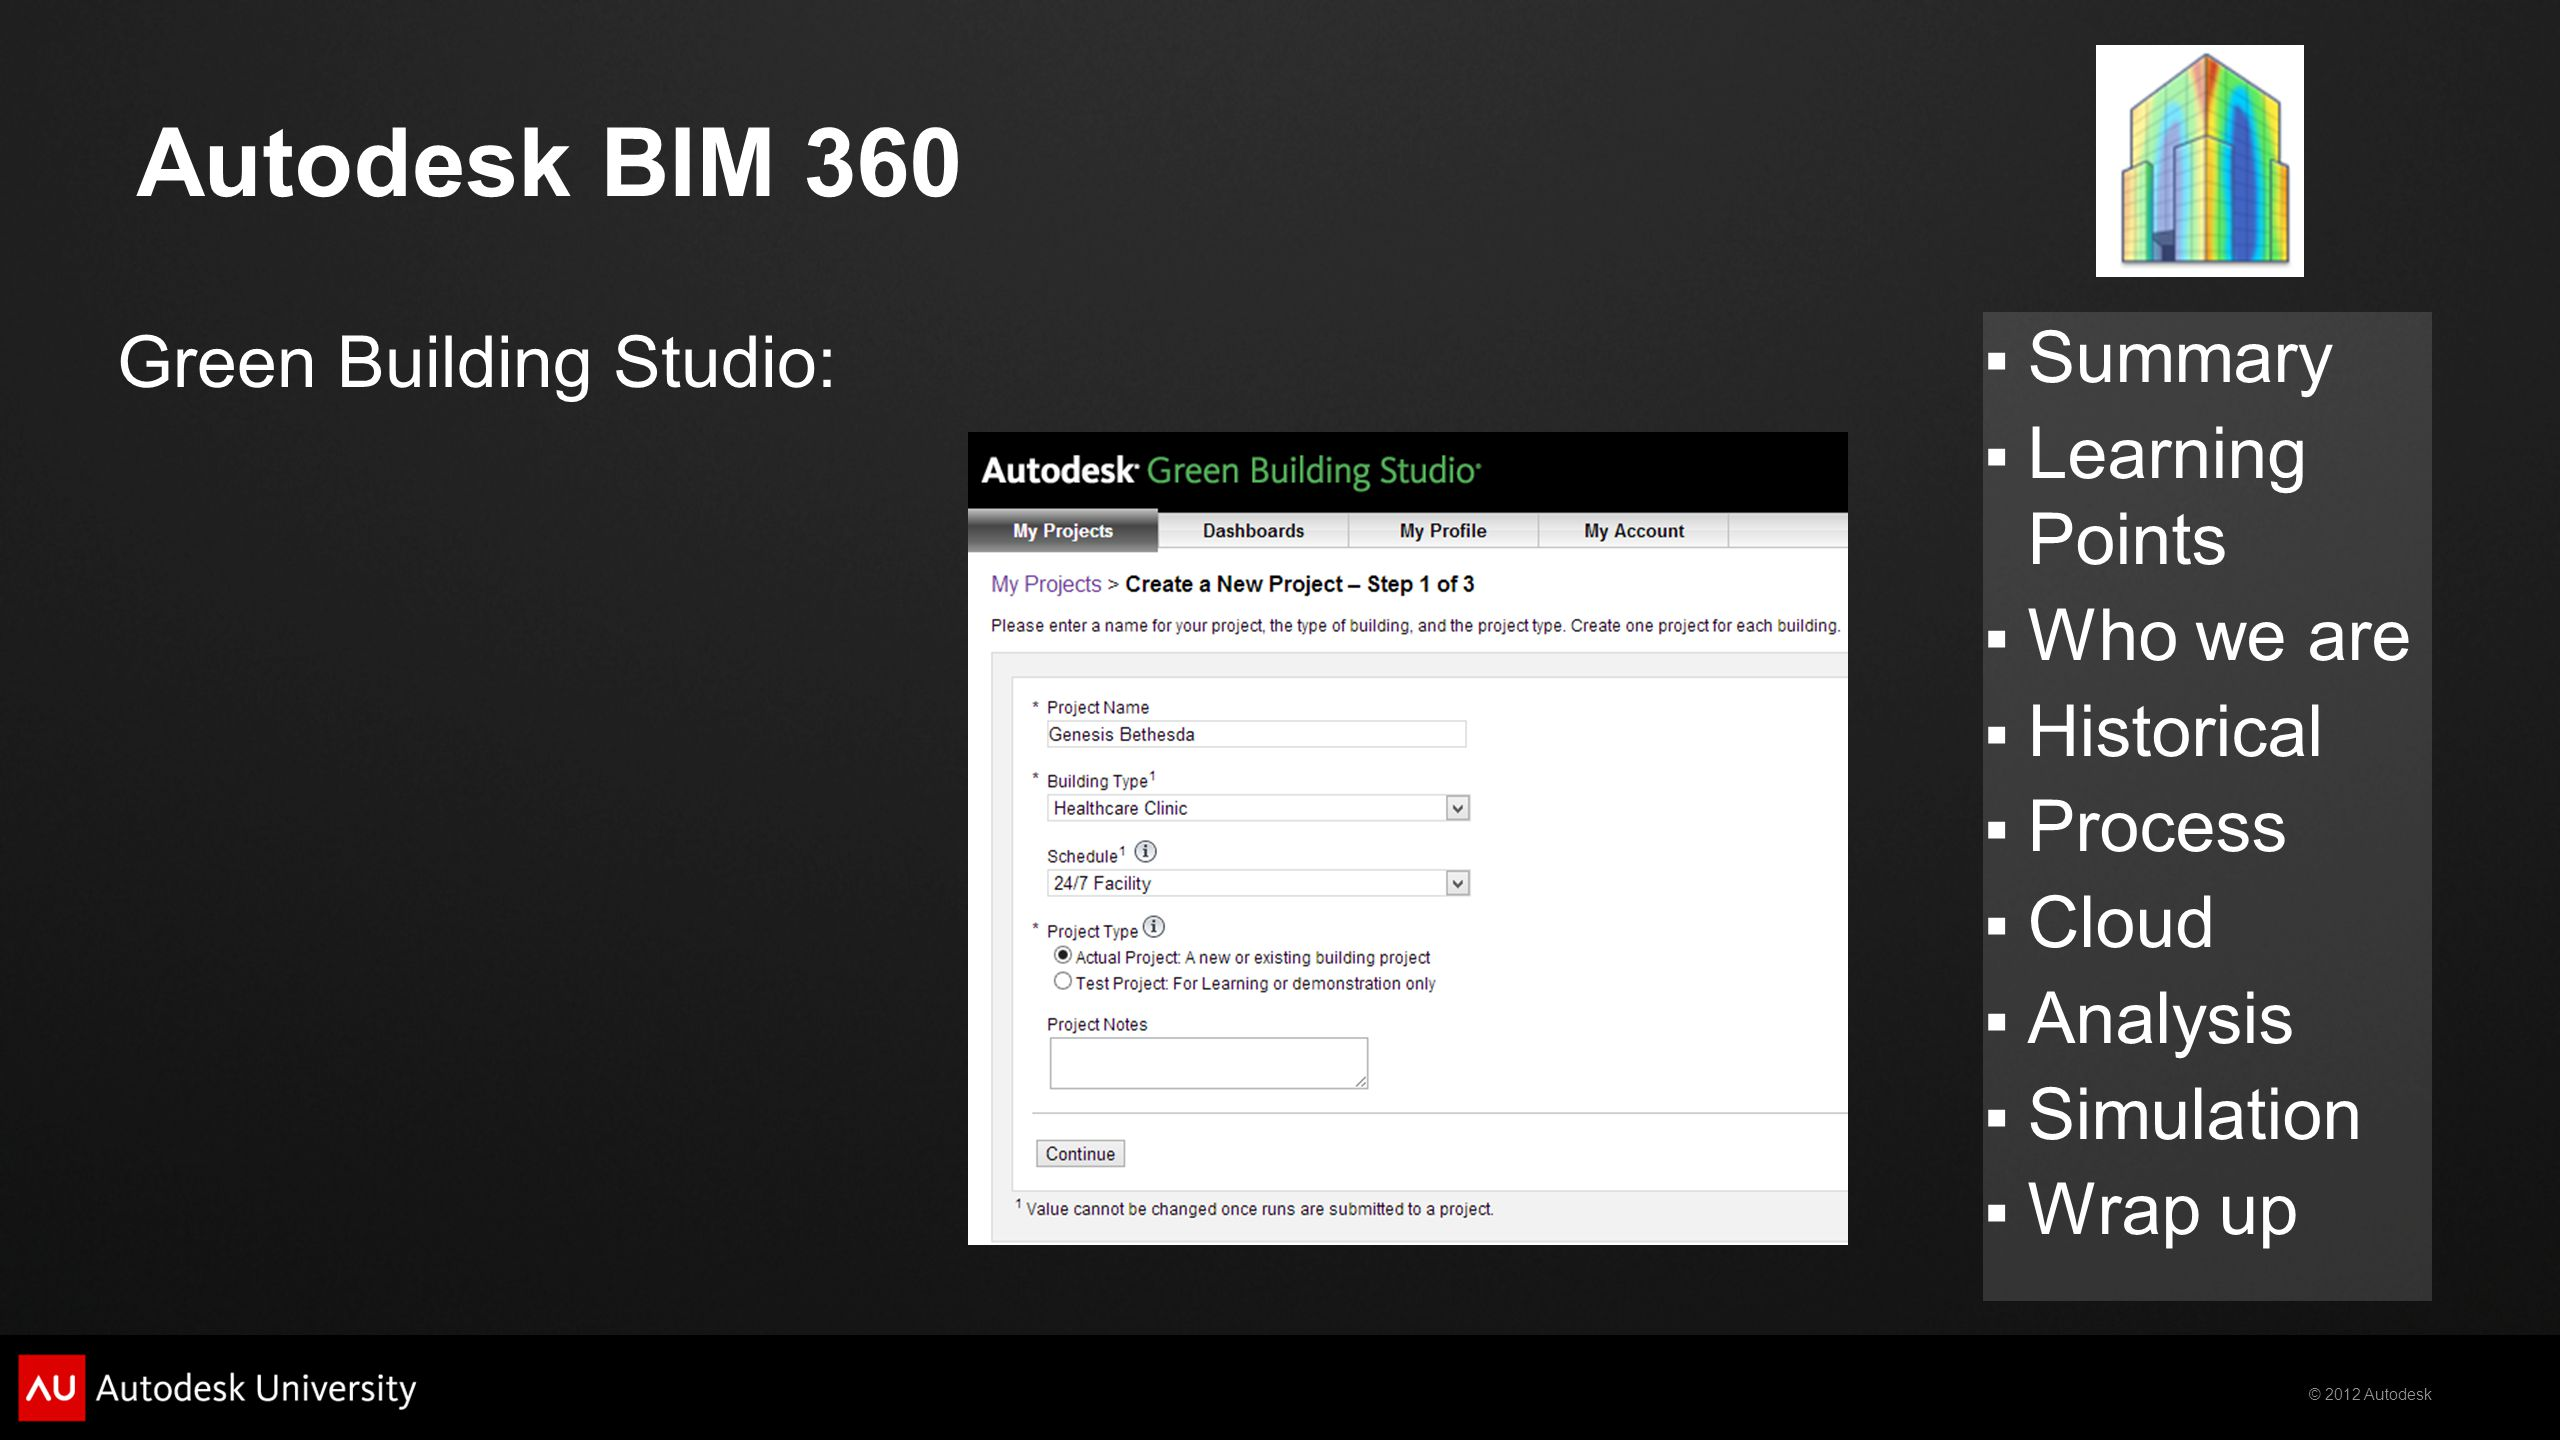 © 2012 Autodesk  Summary  Learning Points  Who we are  Historical  Process  Cloud  Analysis  Simulation  Wrap up Autodesk BIM 360 Green Build